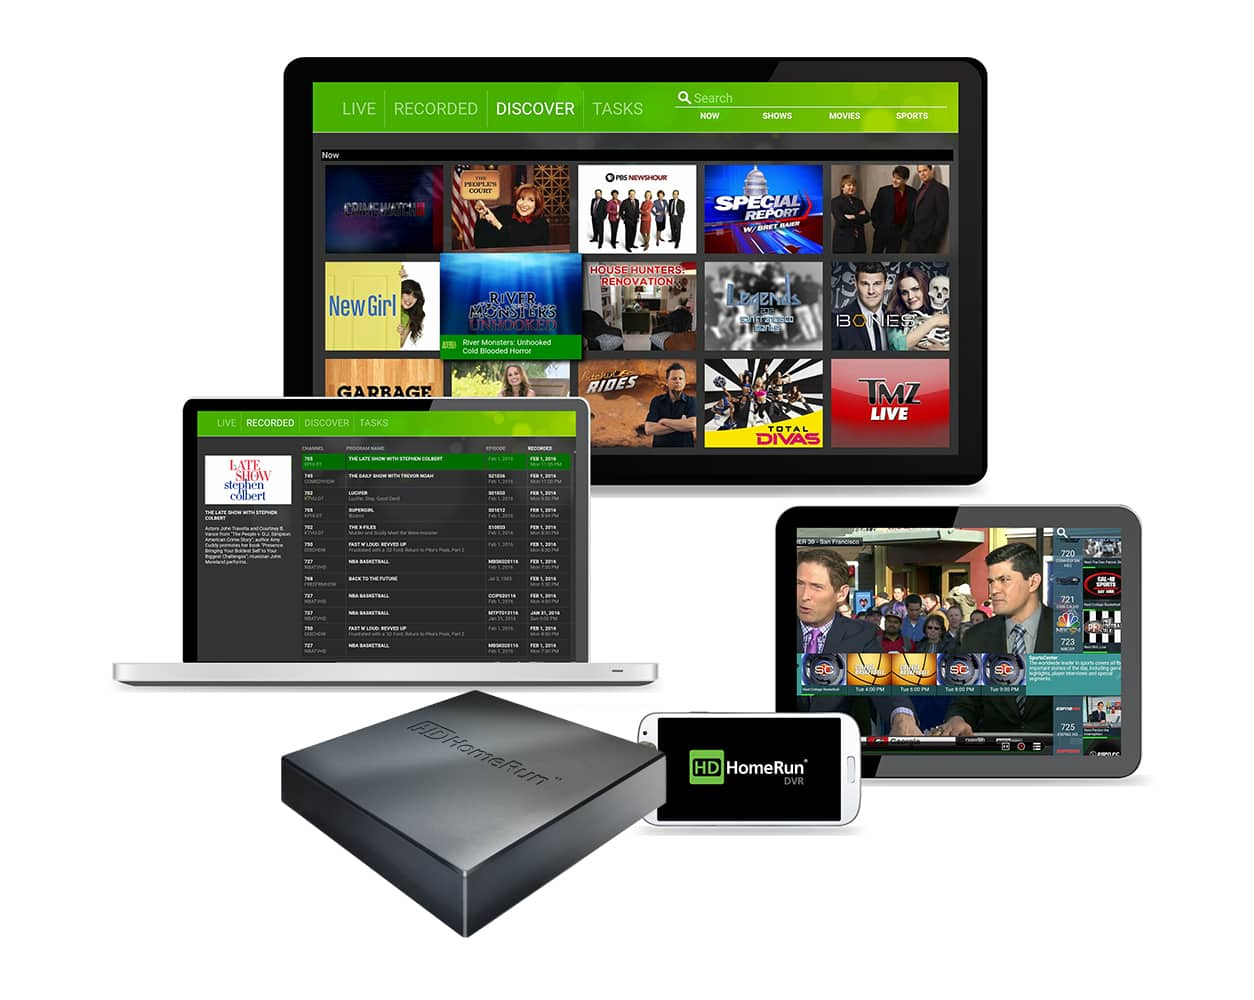 SiliconDust HDHomeRun Connect Duo OTA 2-Tuner Streaming Media Player DVR $79.99